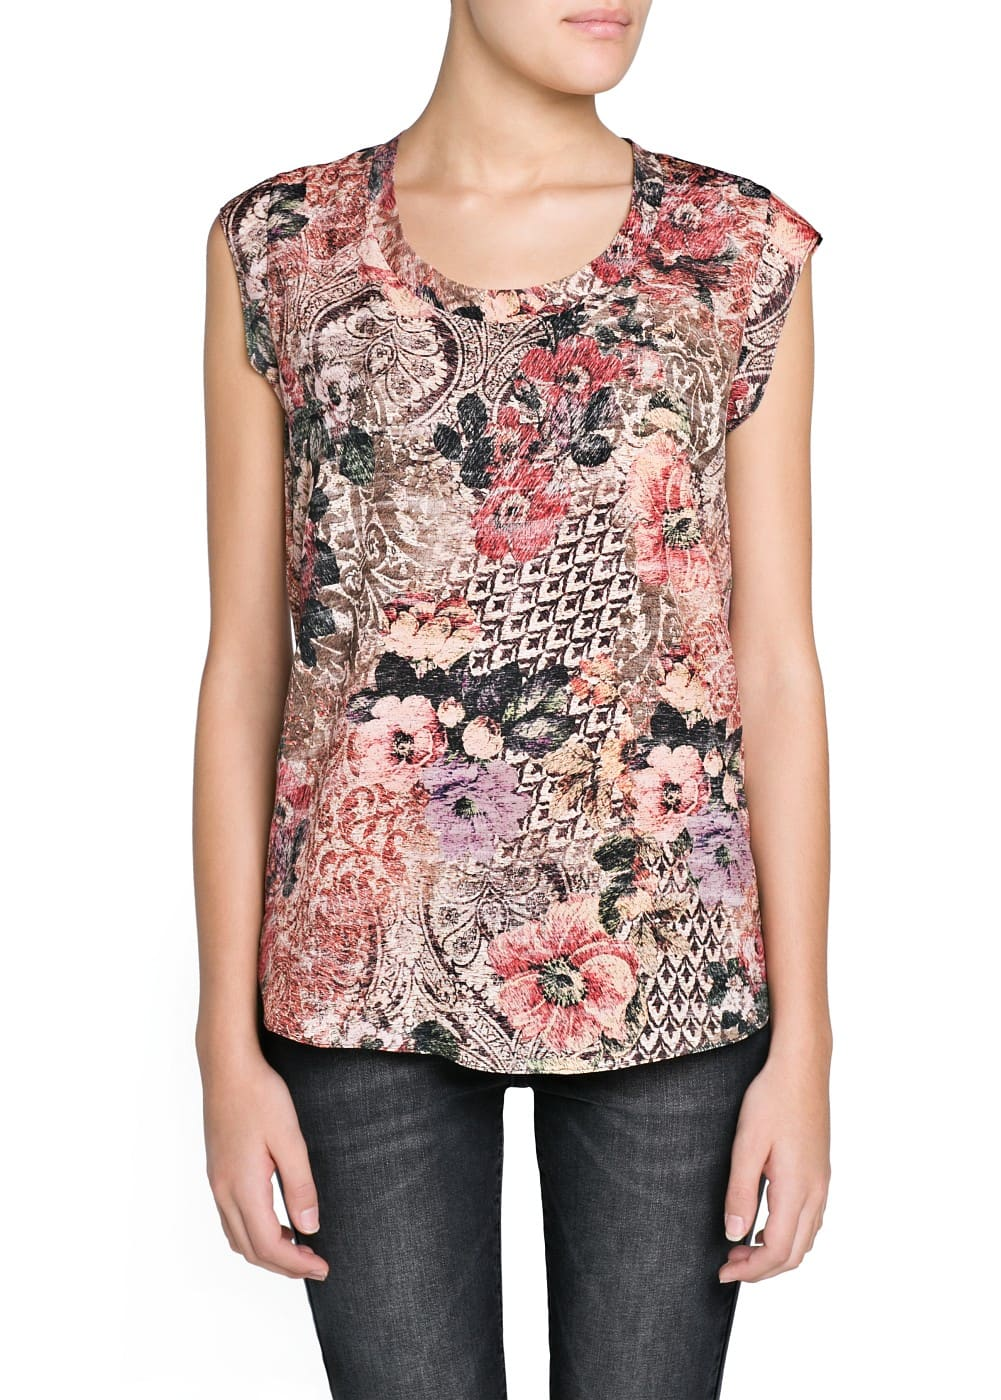 Tapestry print flowy shirt